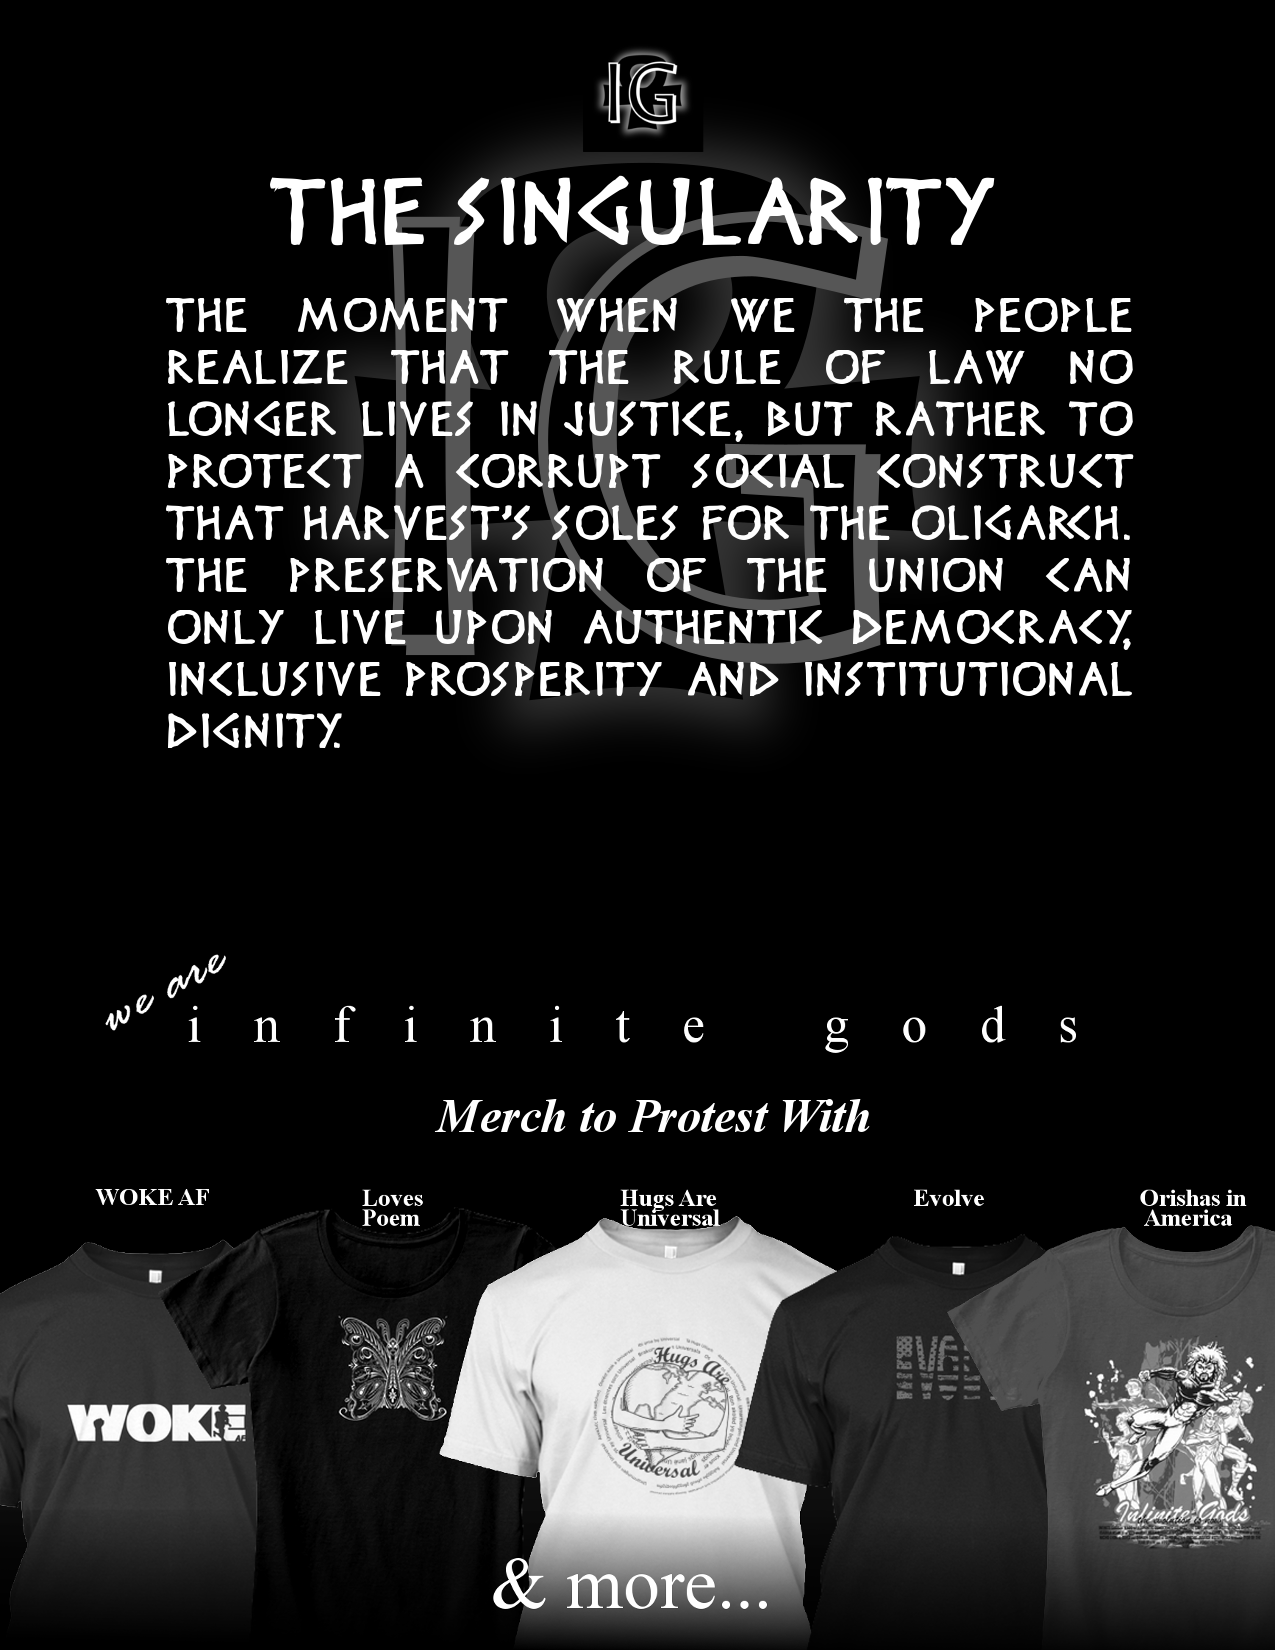 ig-novel-the-singularity